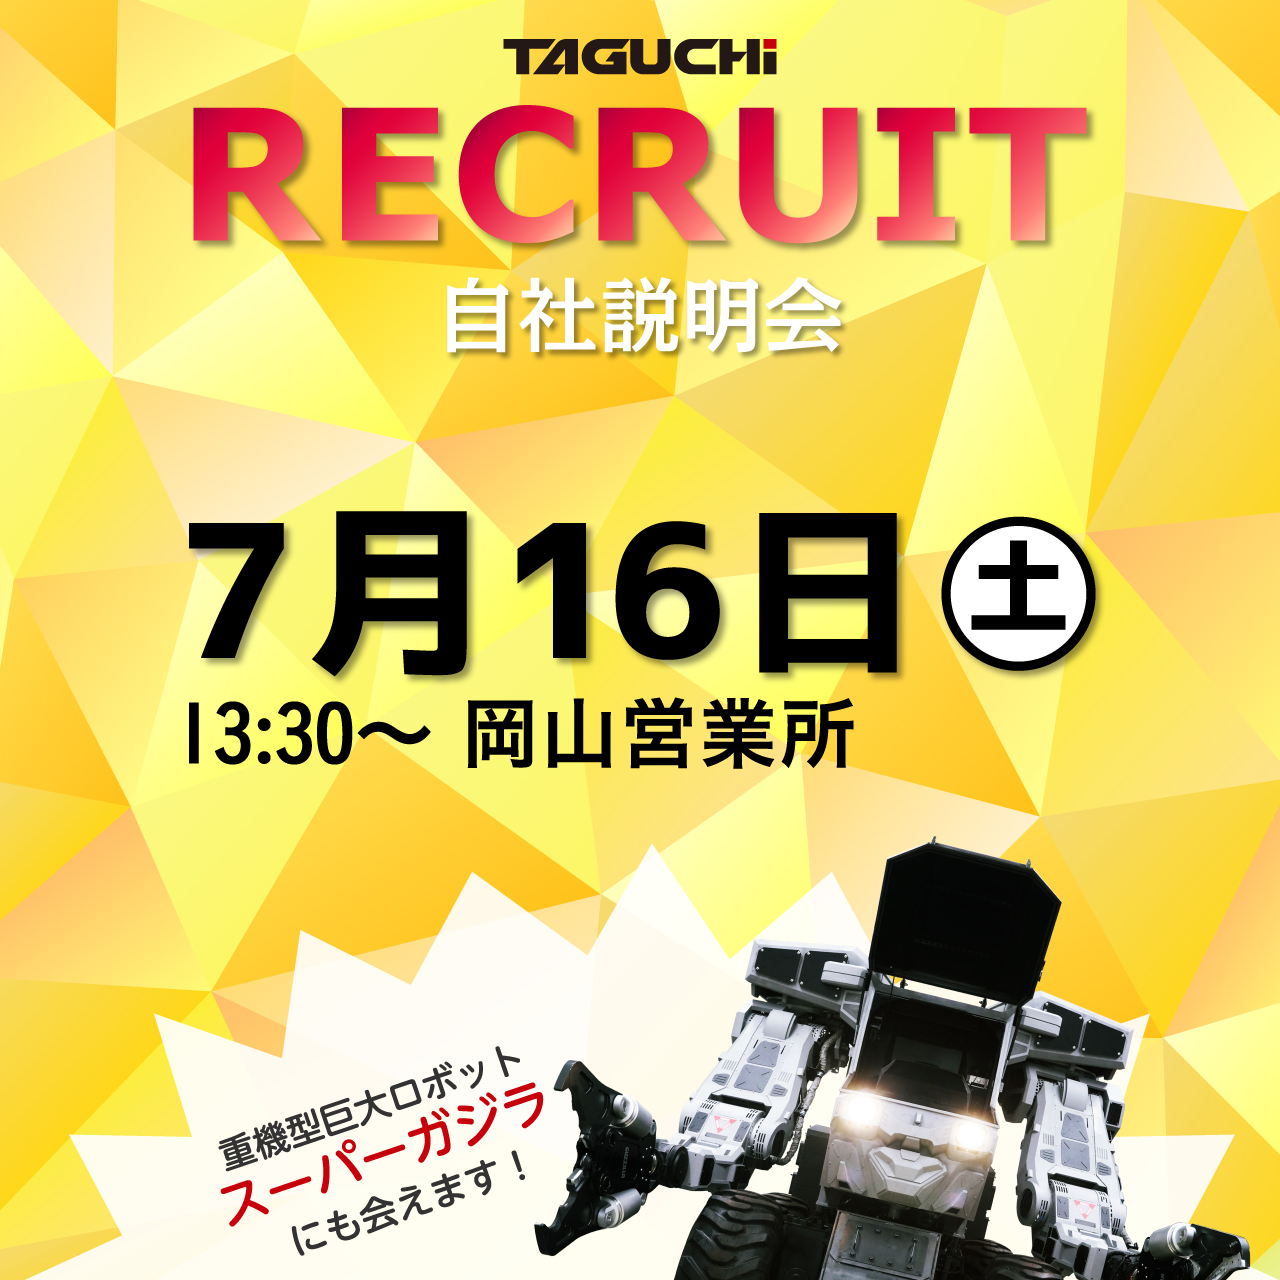 recruit_FB_20160620